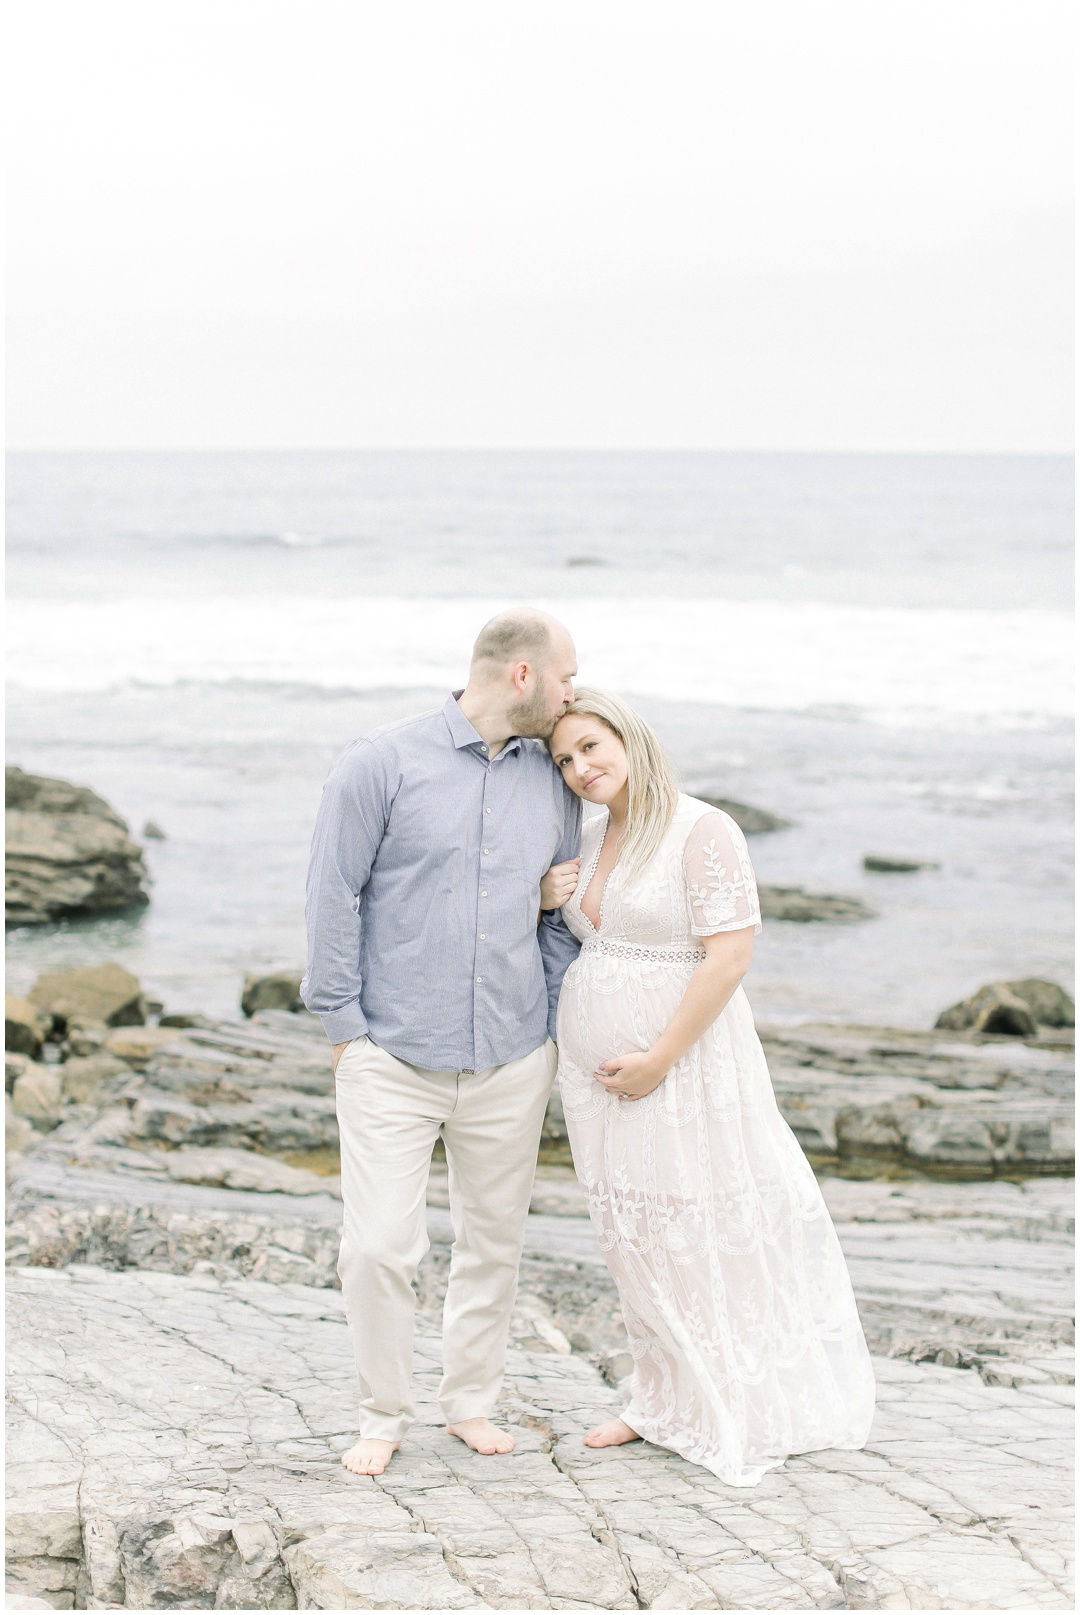 Newport_Beach_Newborn_Light_Airy_Natural_Photographer_Newport_Beach_Photographer_Orange_County_Family_Photographer_Cori_Kleckner_Photography_Newport_Beach_Photographer_Marisa_Podesto_Todd_Podesto__3960.jpg